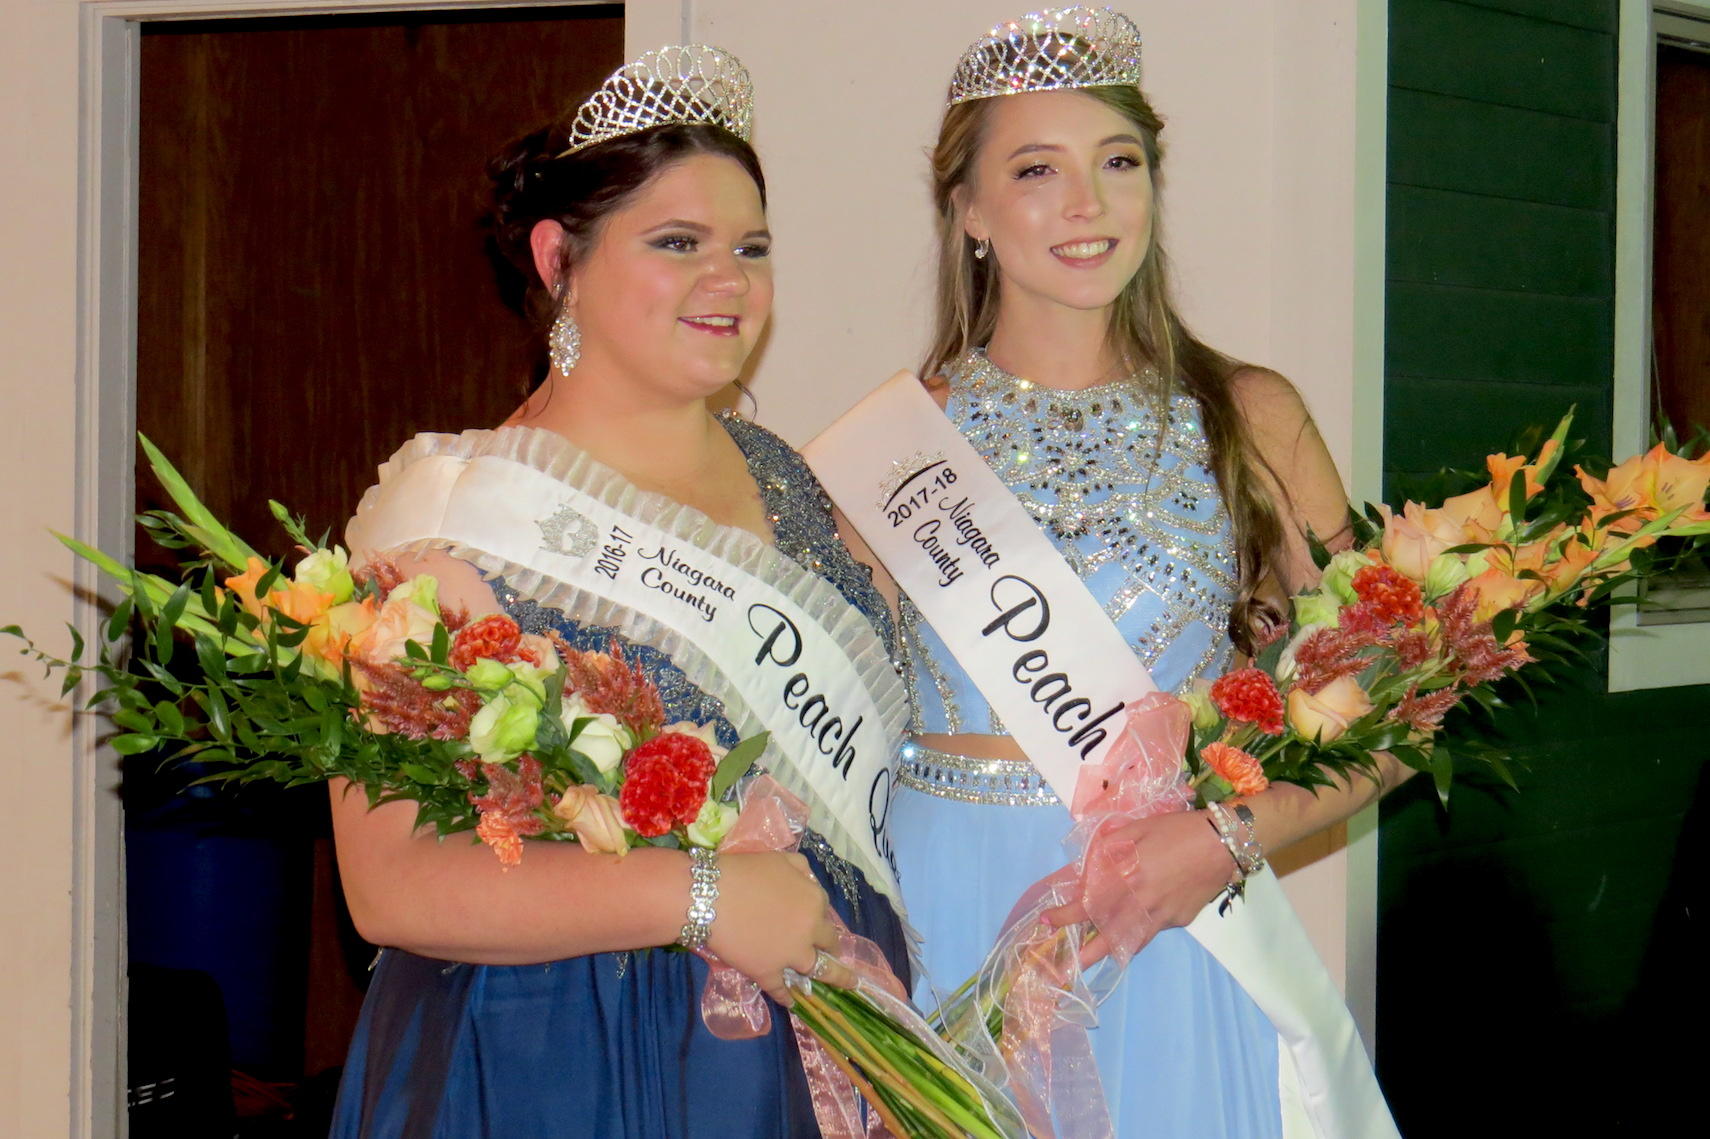 Outgoing Peach Queen Angelica Beiter stands with the new Peach Queen, Jamie Hagerty. (Photo by Lauren Garabedian)